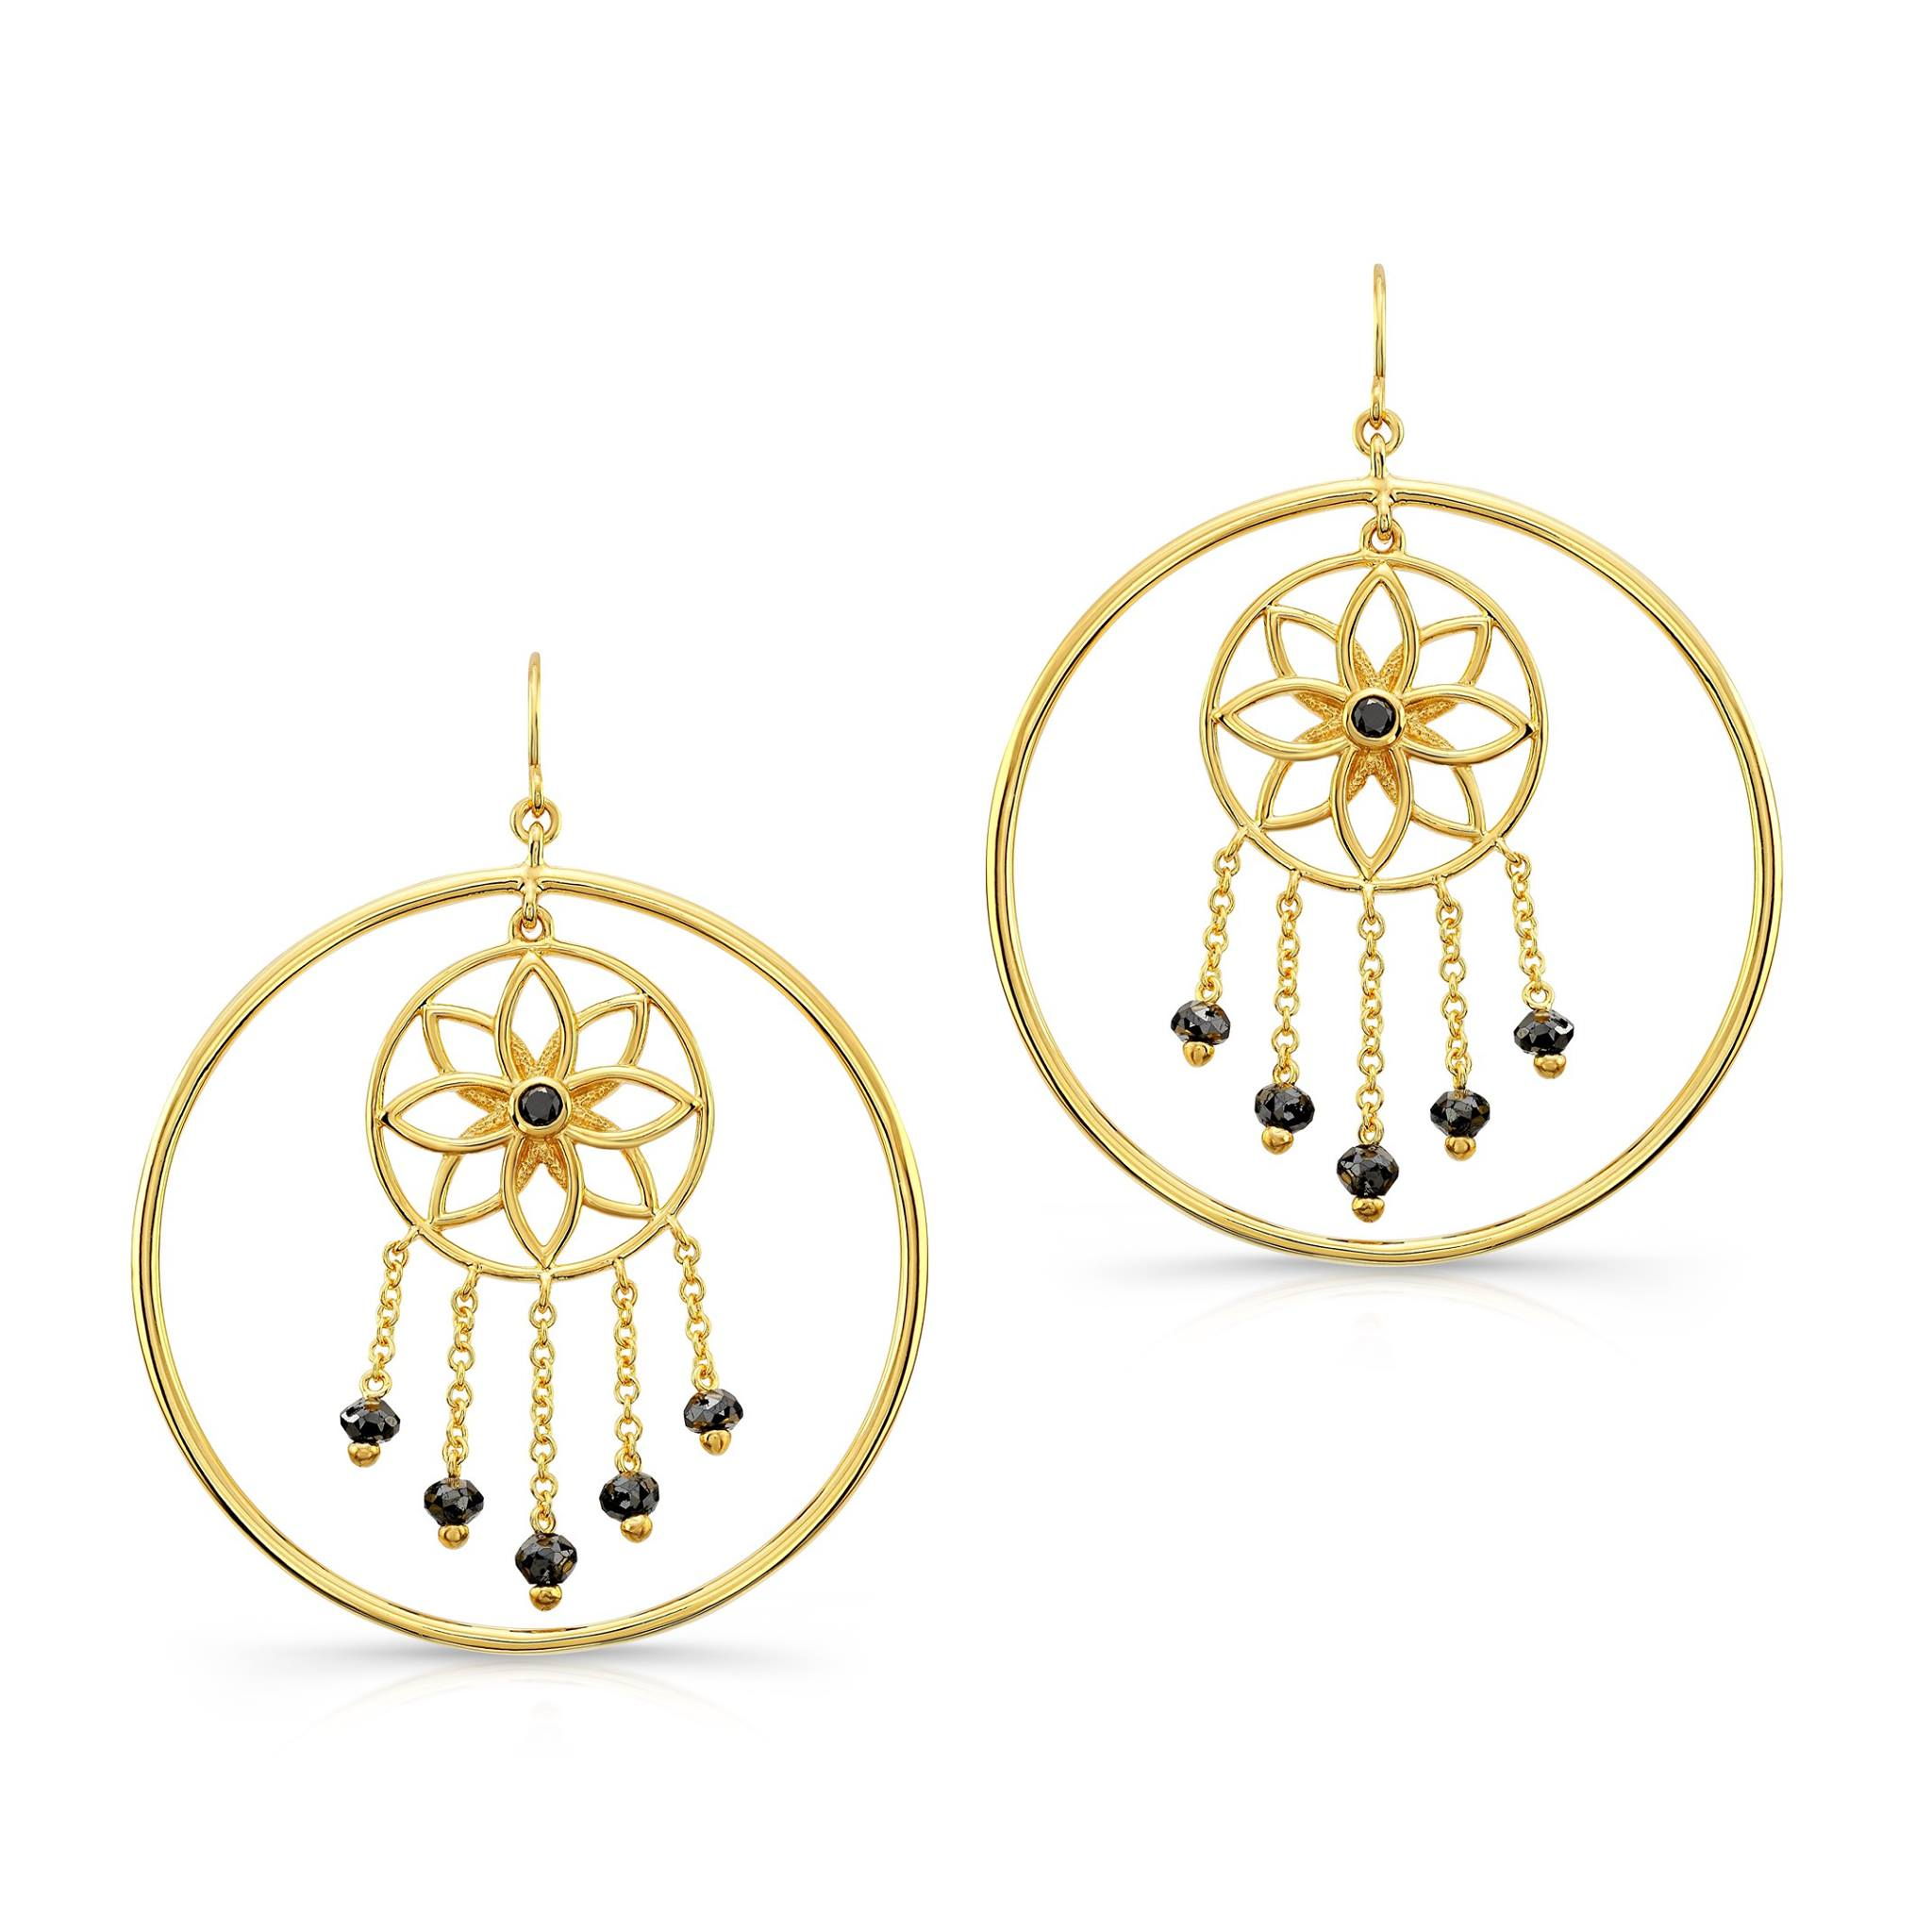 Mandala Dream Catcher Earrings in 22k Yellow Gold.